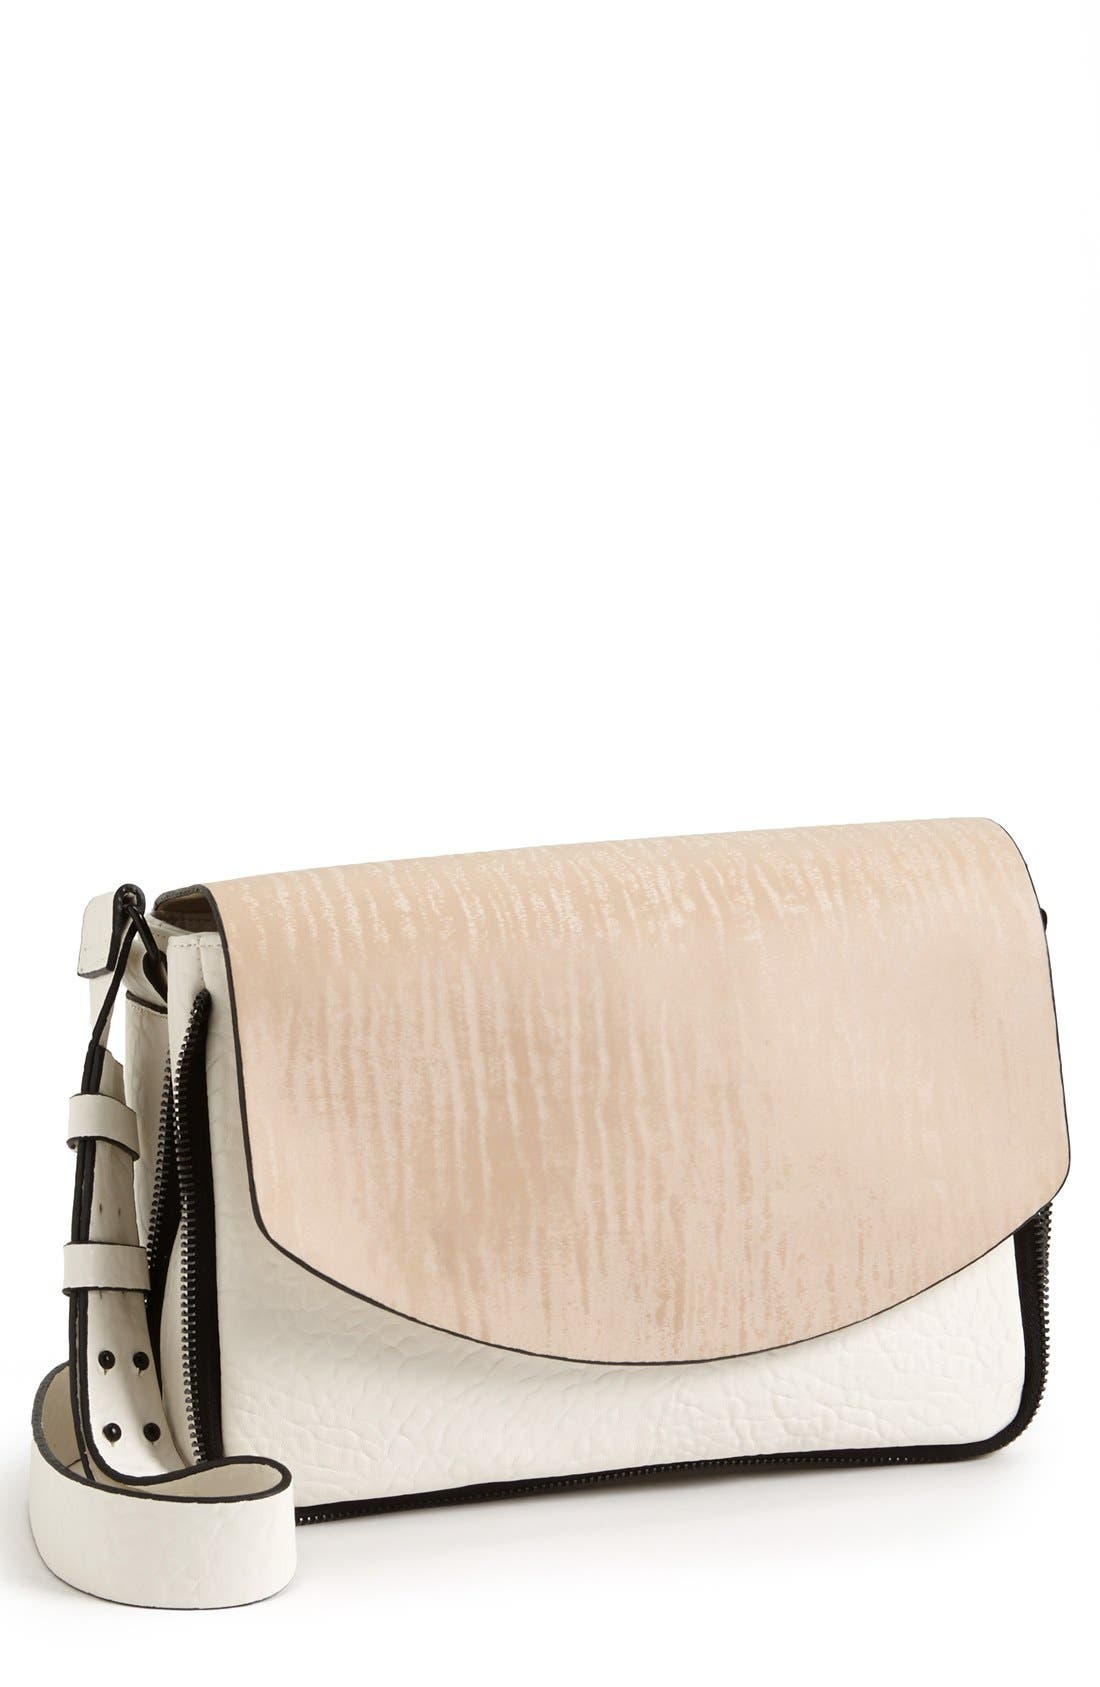 Alternate Image 1 Selected - French Connection 'Chelsea' Crossbody Bag